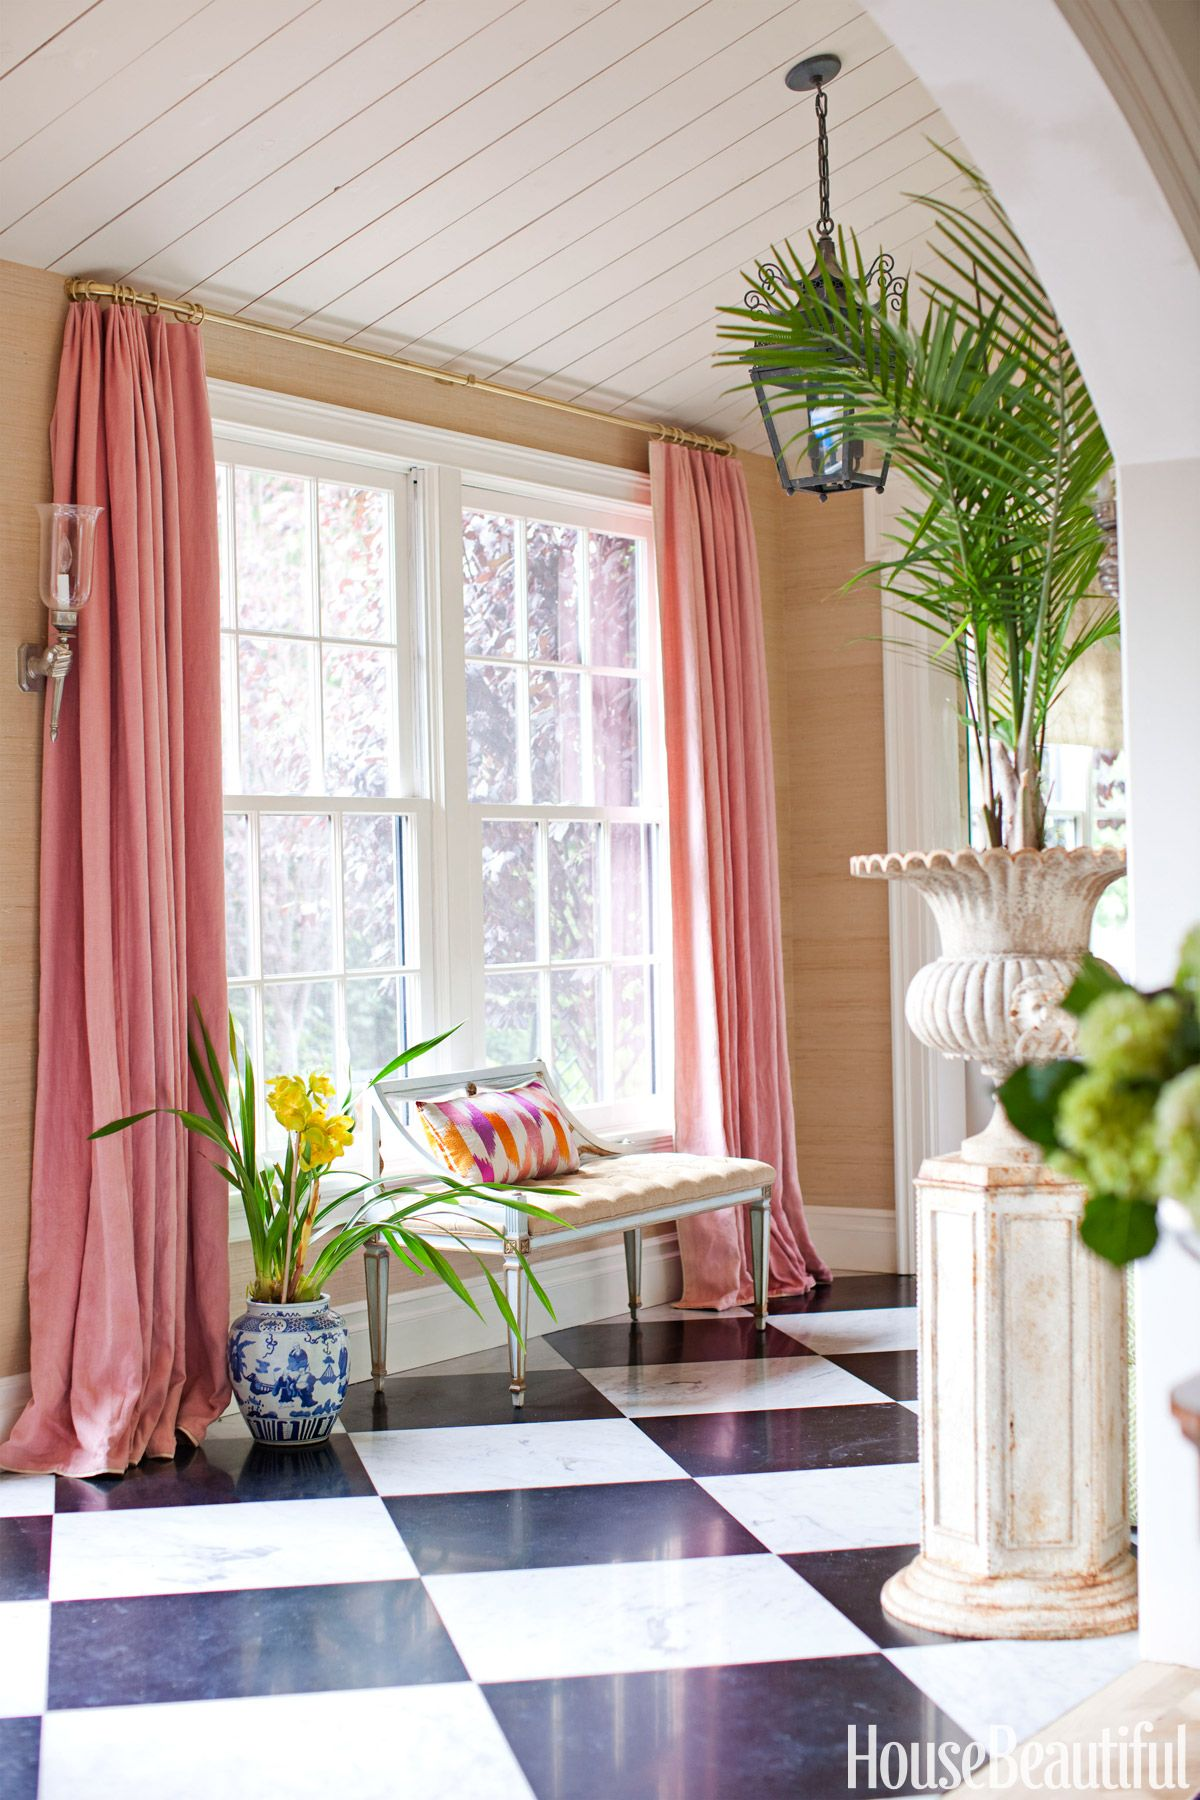 Ask a Designer: How Do I Choose Window Treatments?